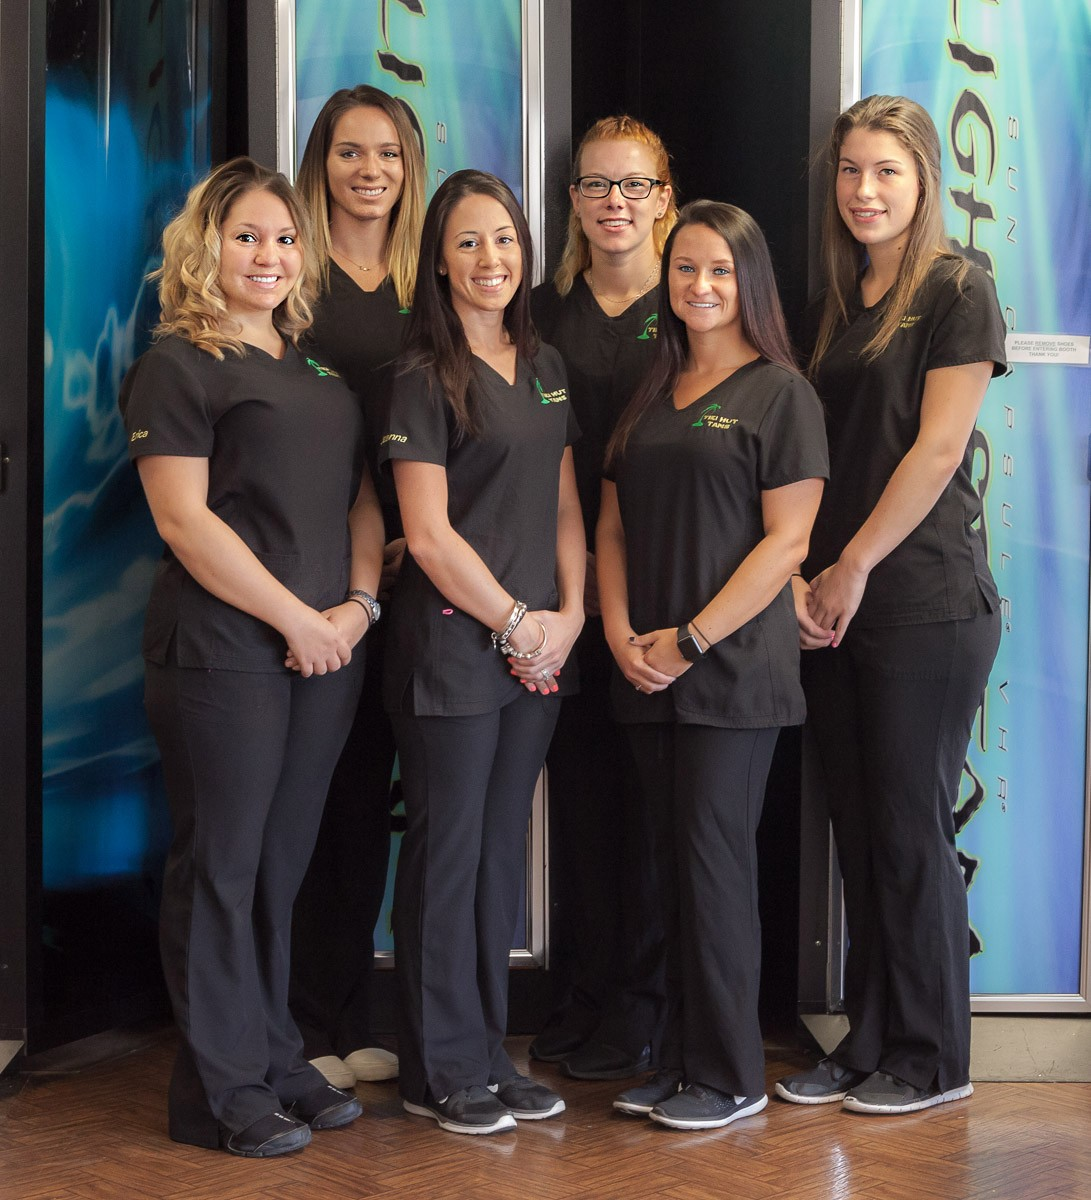 The team of ladies who work at the salon